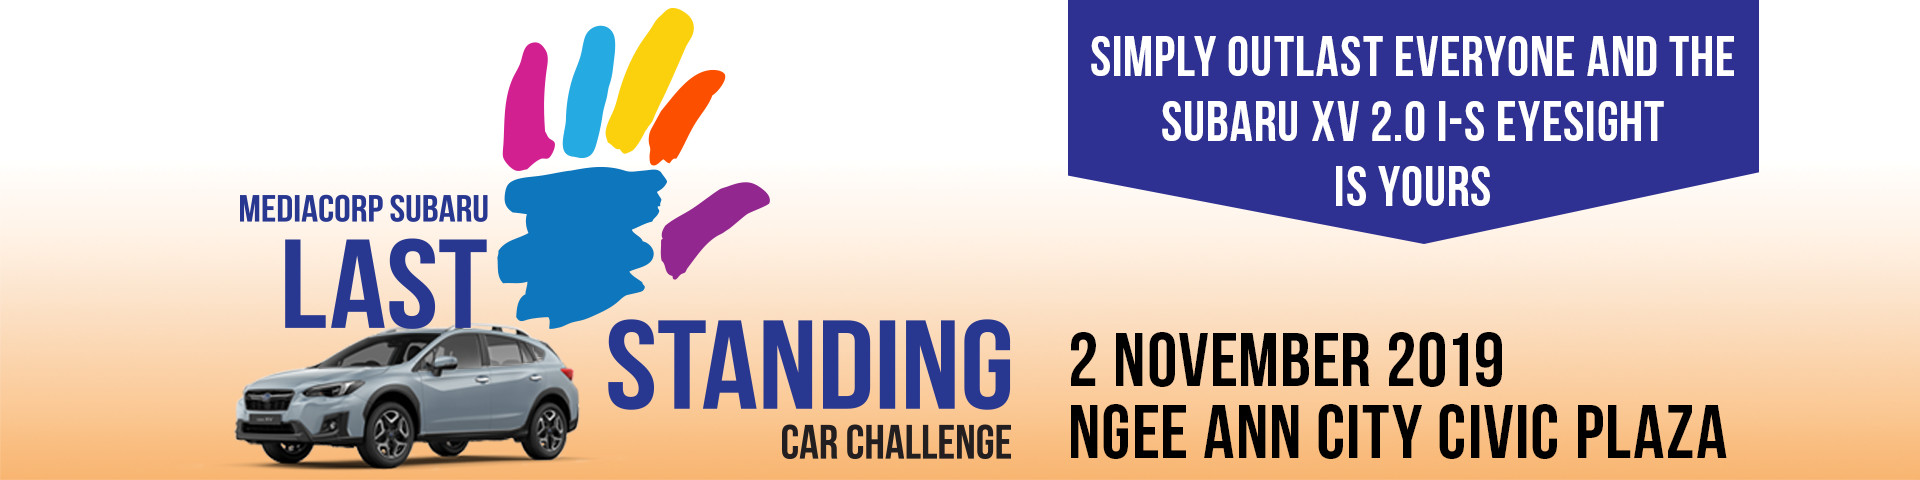 Last Palm Standing - Mediacorp Subaru Car Challenge Banner Image